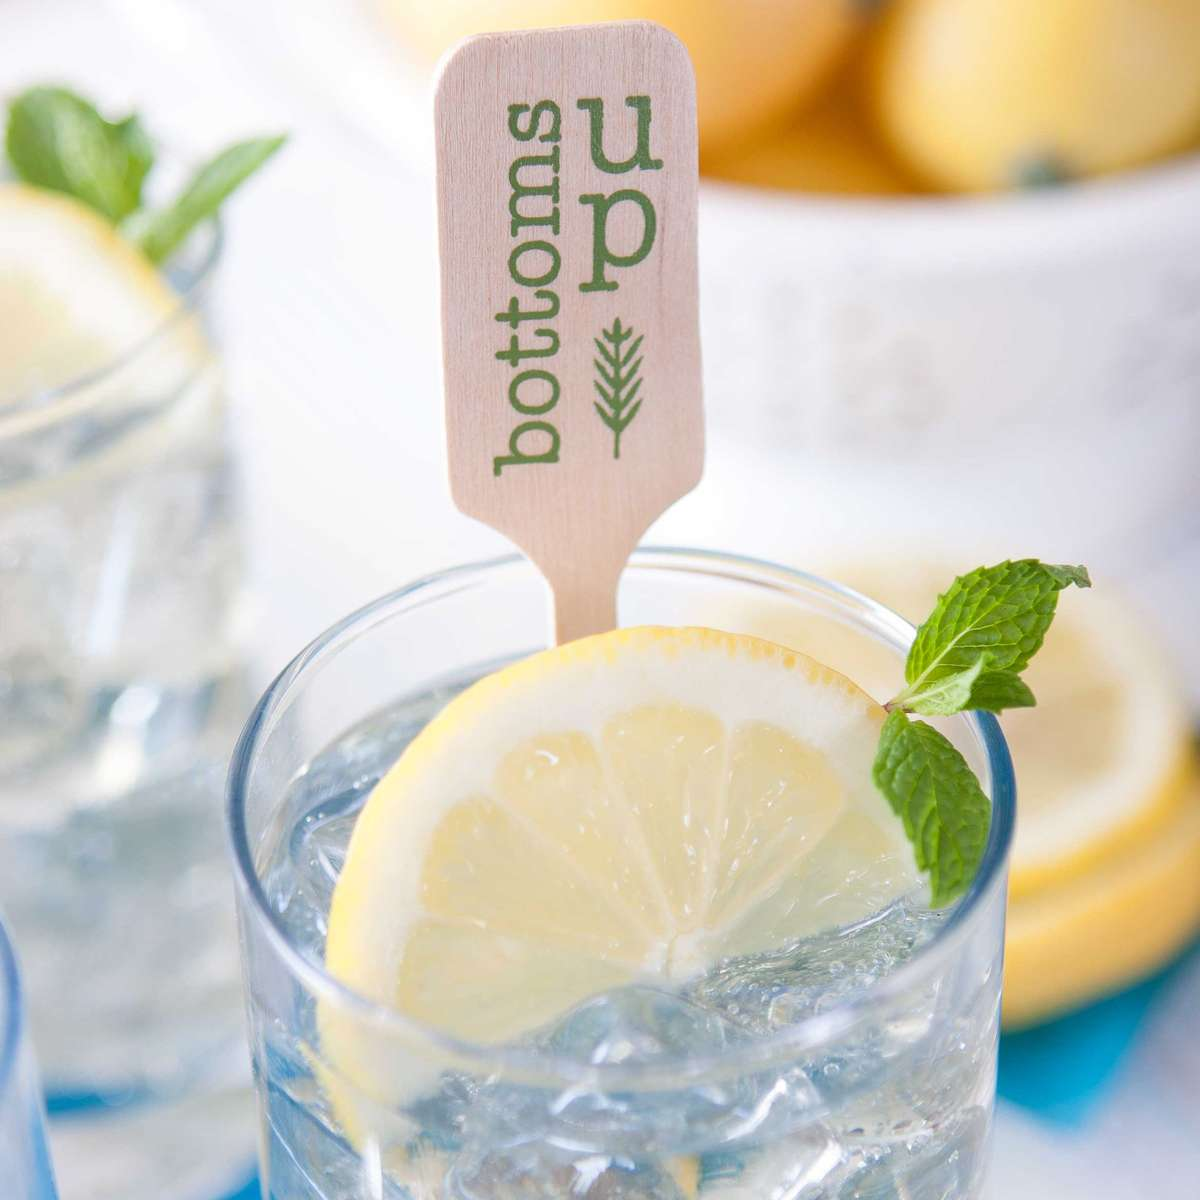 Personalized Cocktail Stirrer in a lemon lime spritzer for summer party hosting